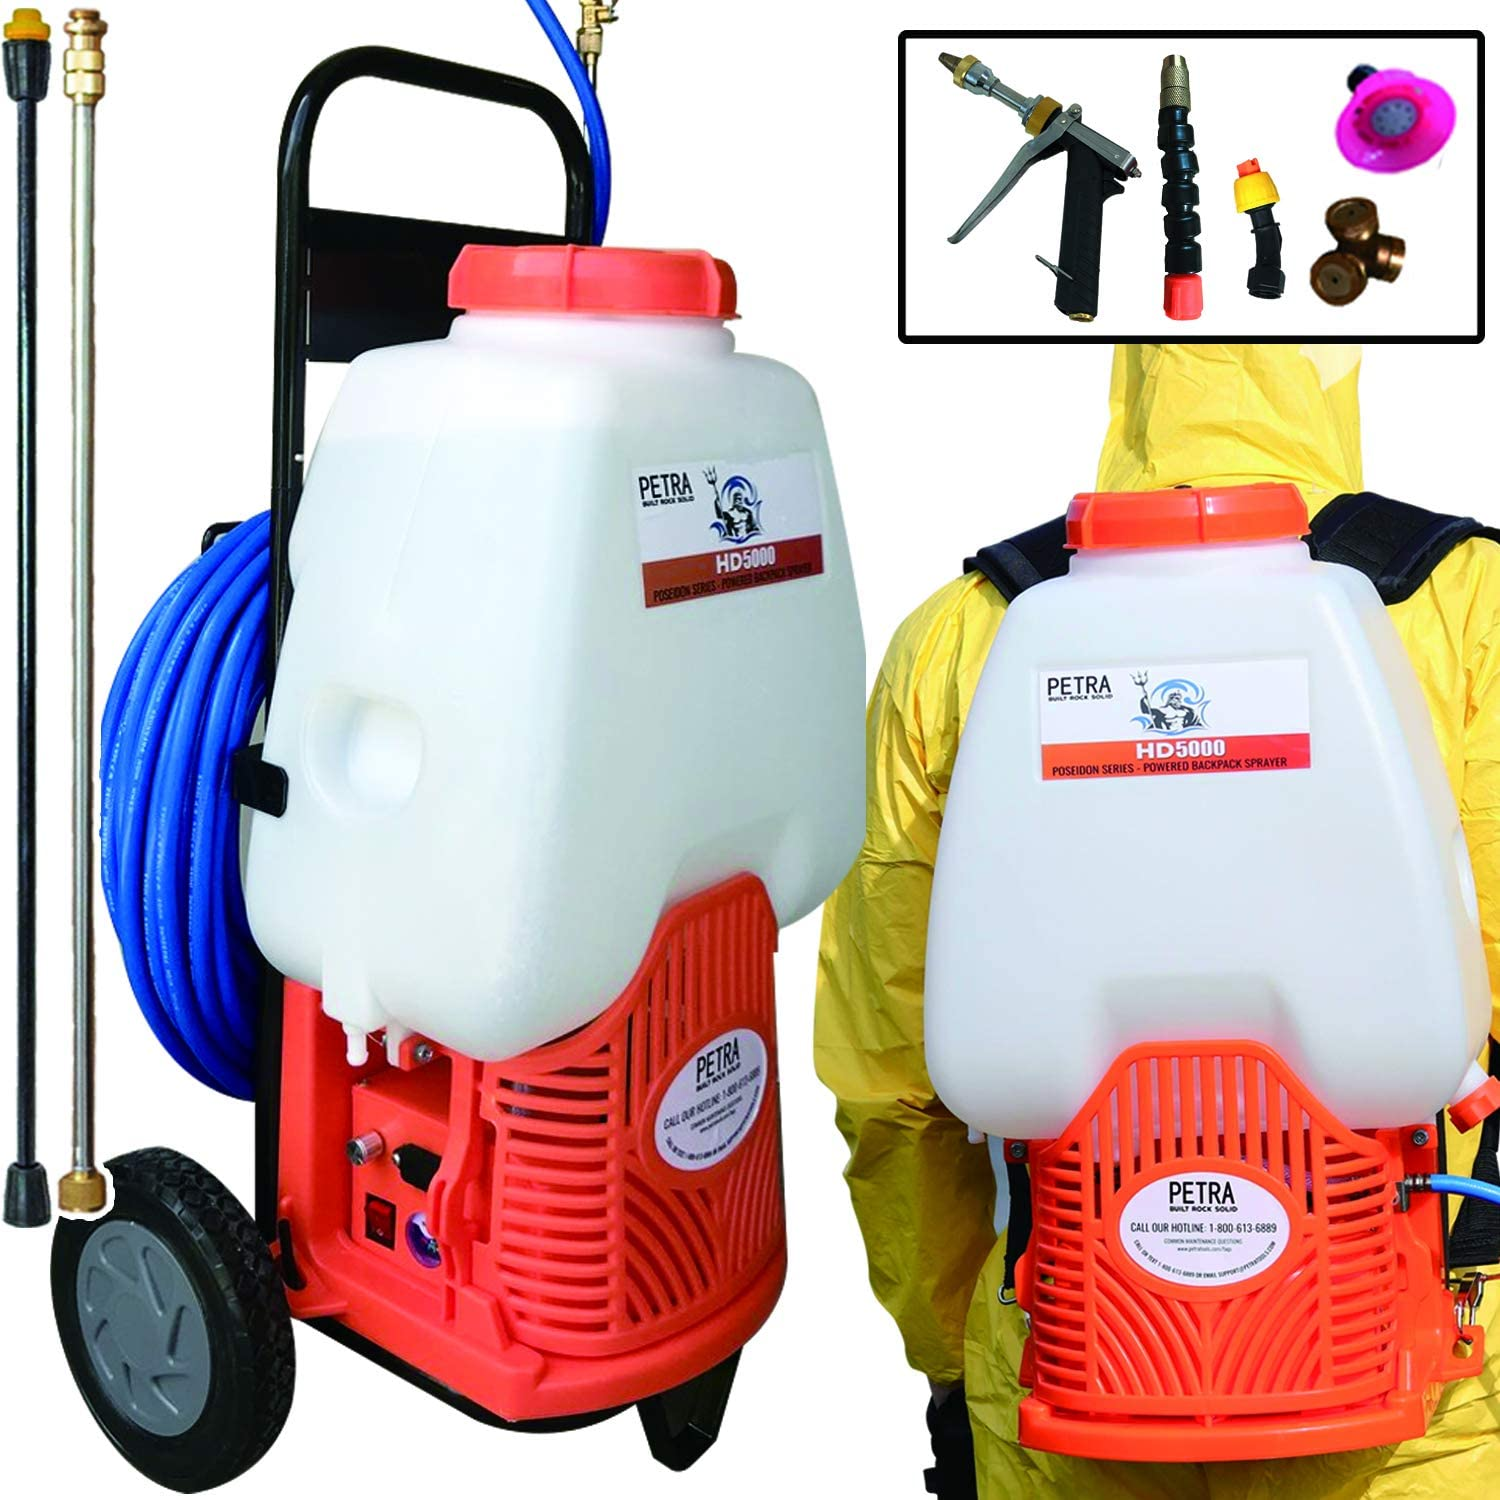 Petra Powered Backpack Sprayer with Custom Fitted Cart and 100 Foot Commercial Hose, 2 Hoses Included, Commercial Quality Heavy Duty Sprayer 6.5 Gallon Cart Sprayer